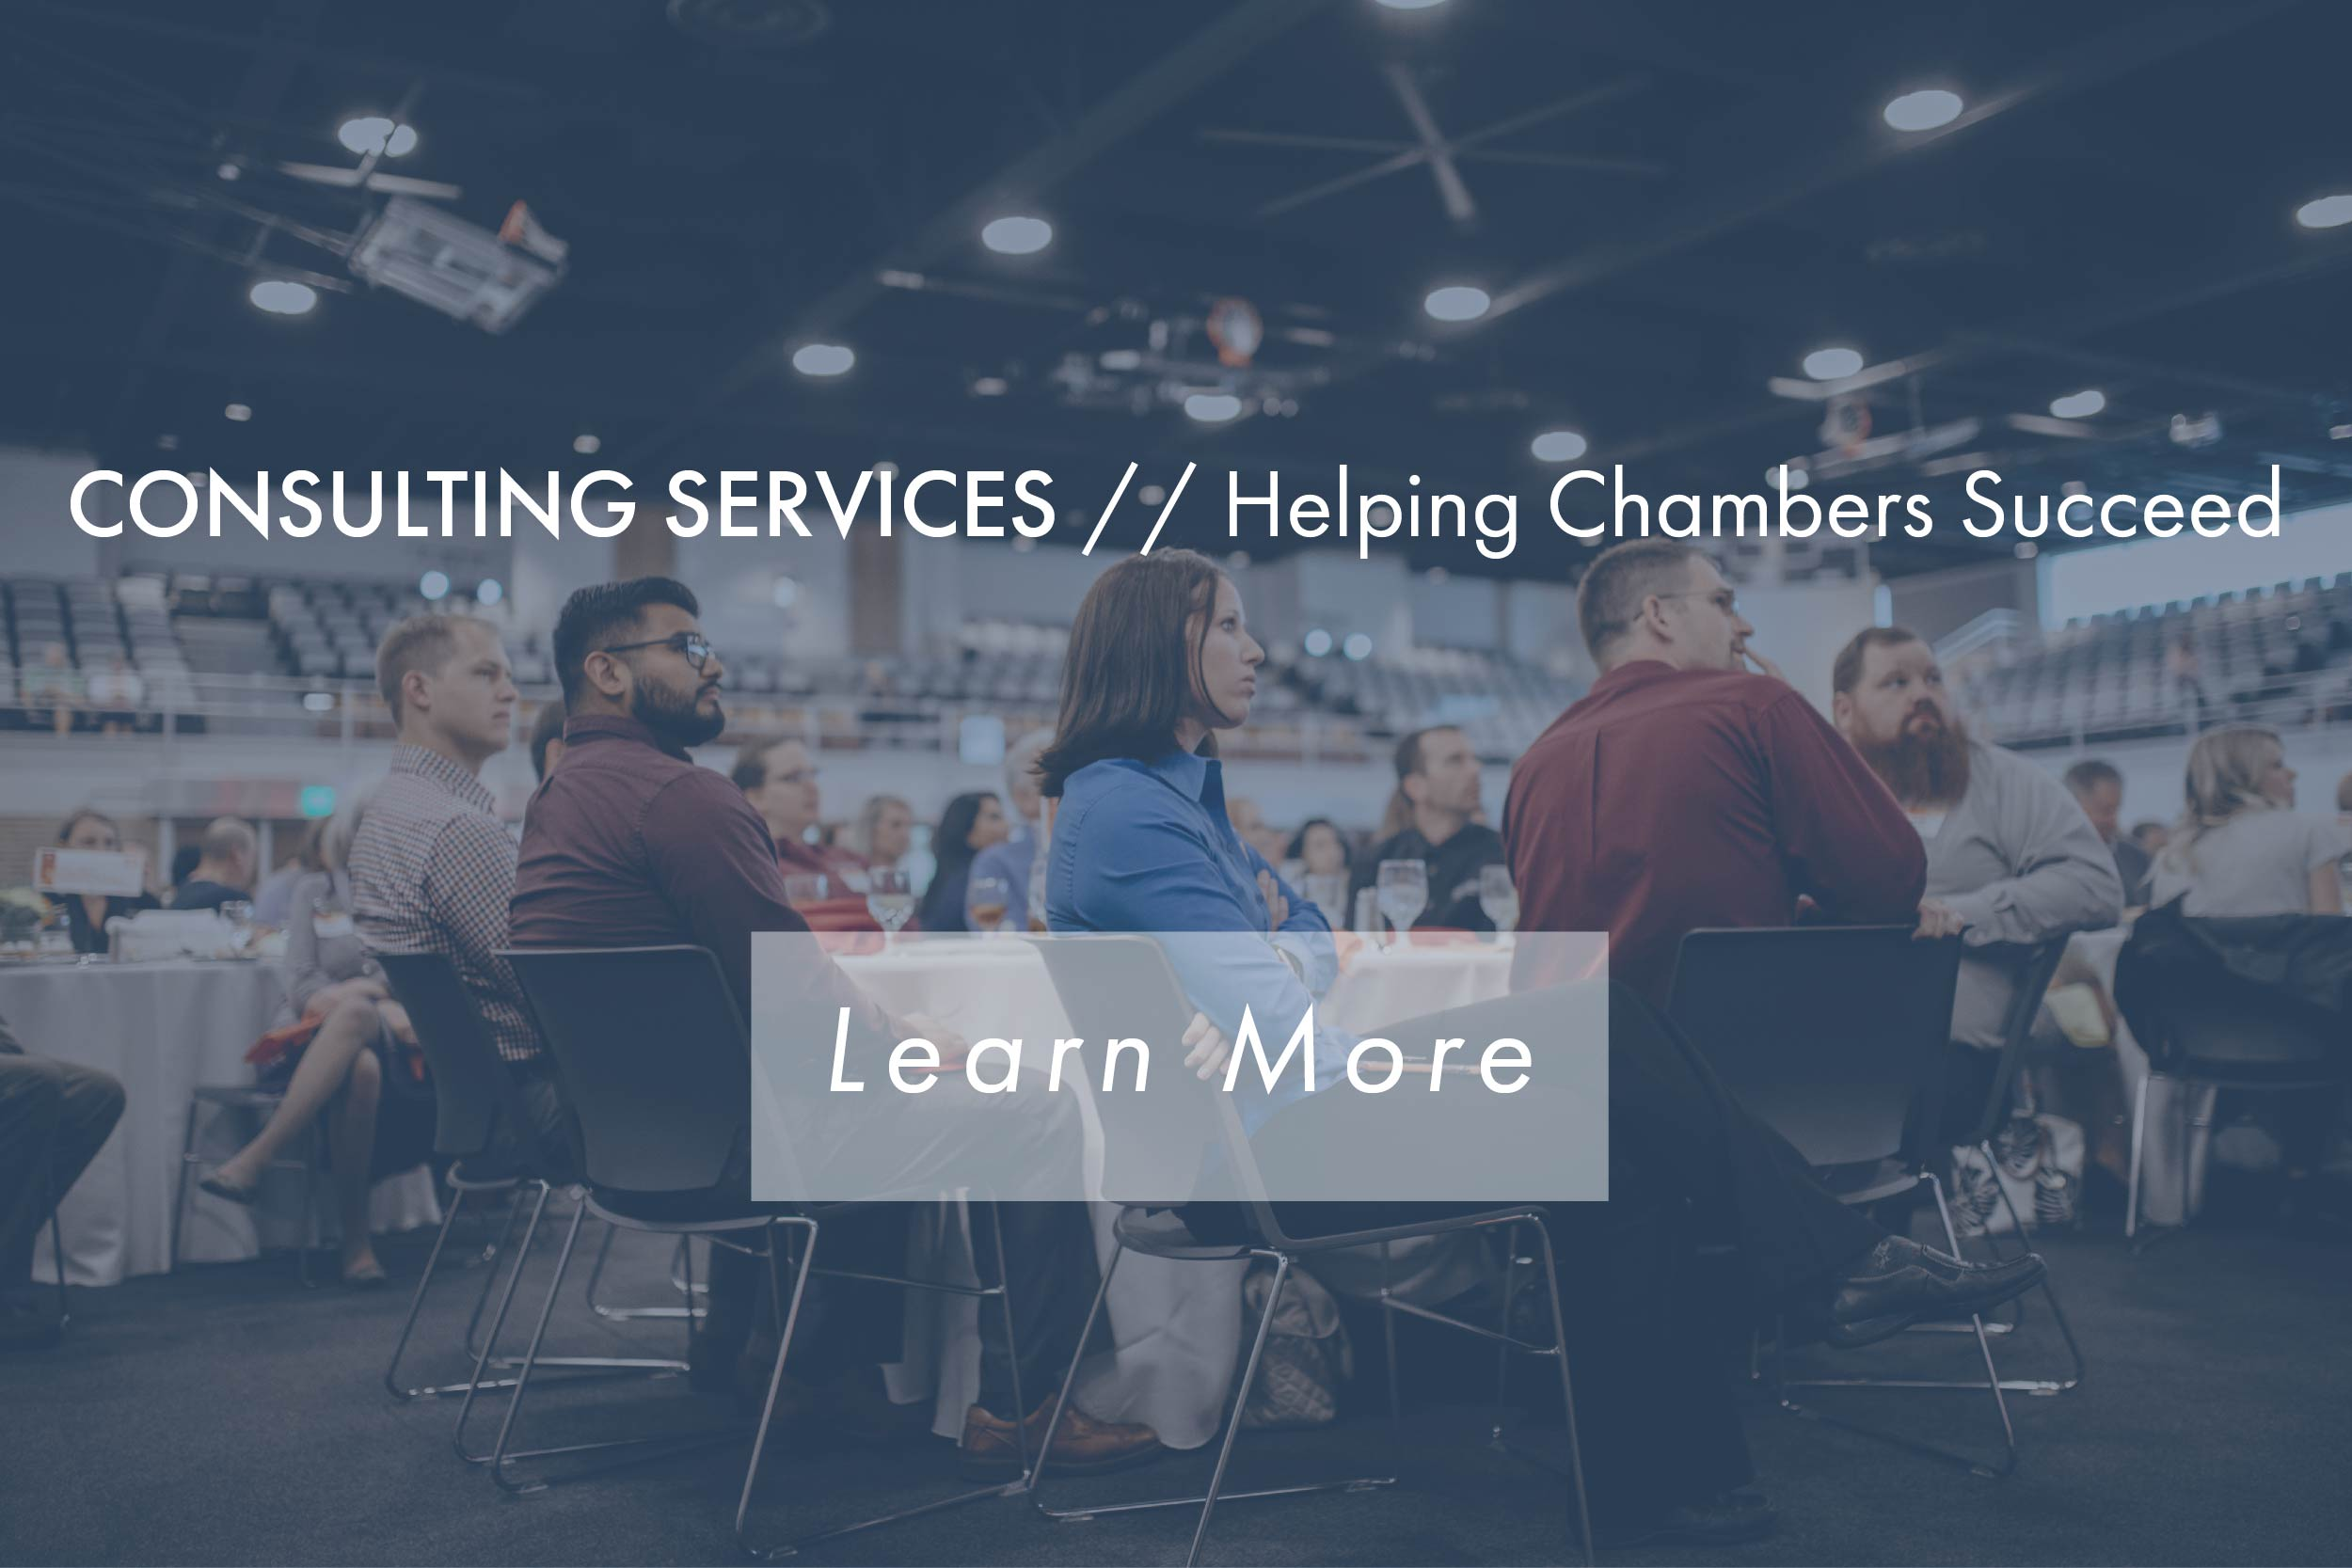 Consulting Services Helping Chambers Succeed